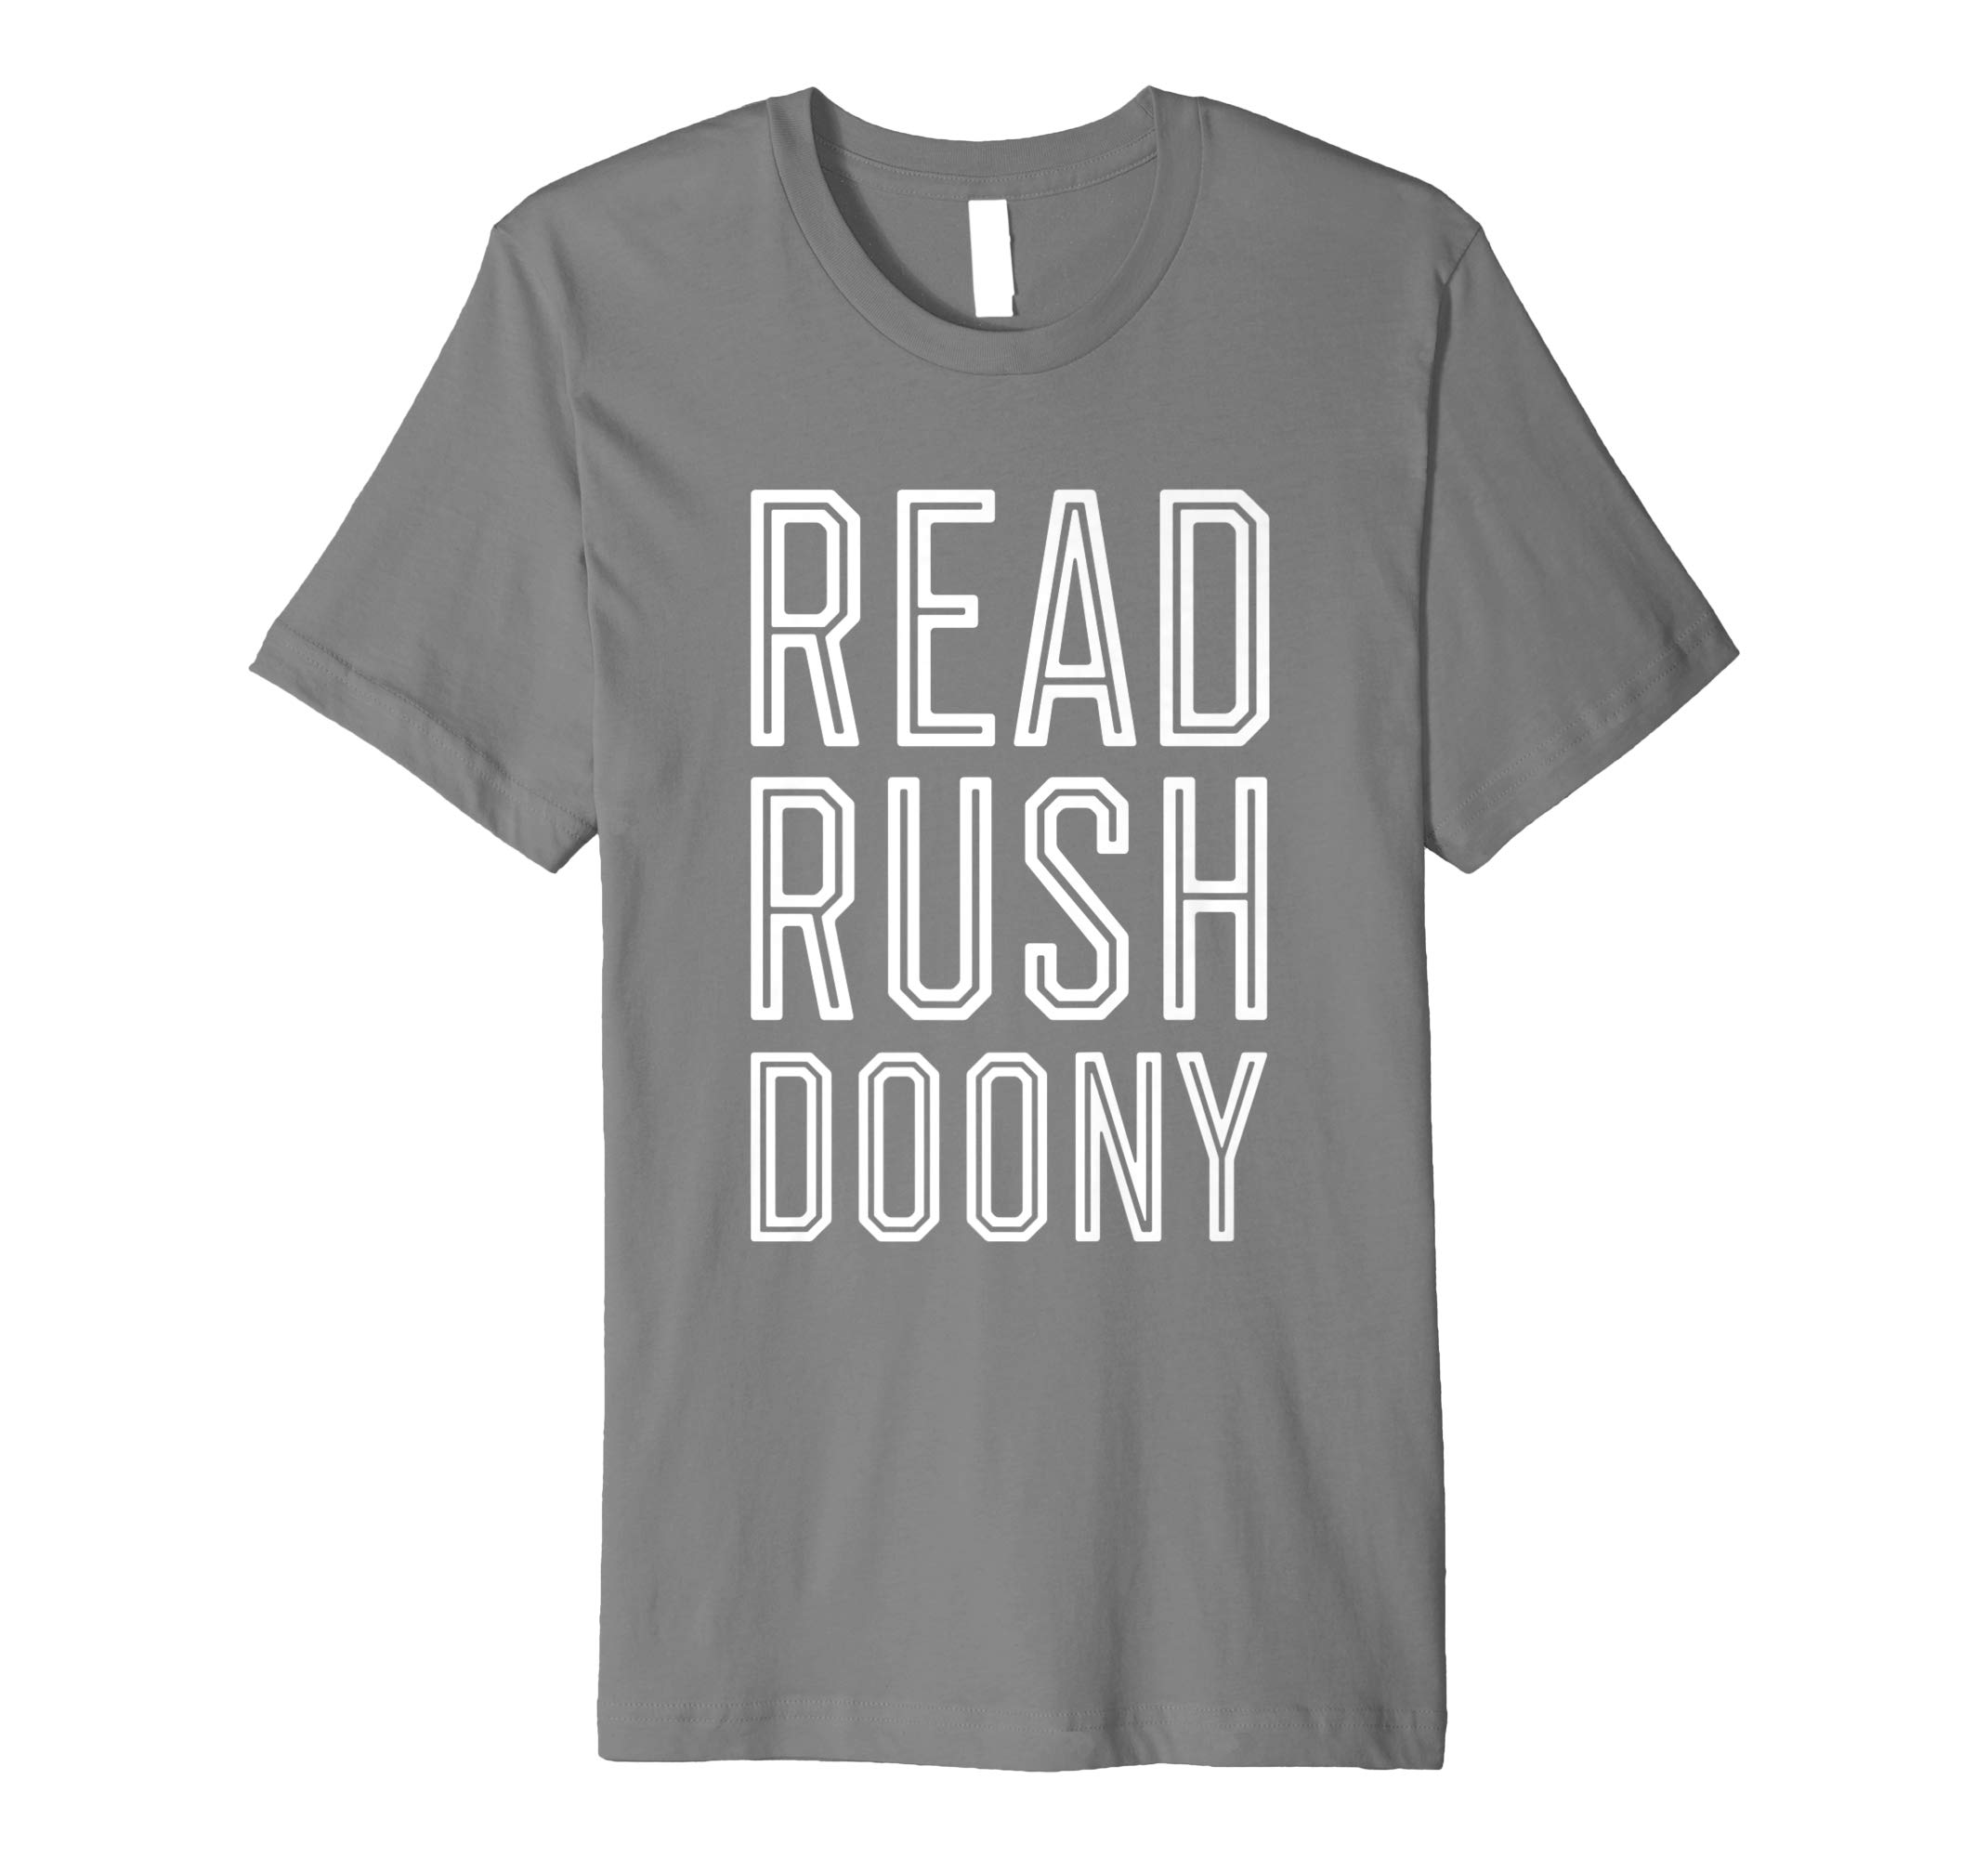 Read Rushdoony Shirt | Reconstructionist Radio